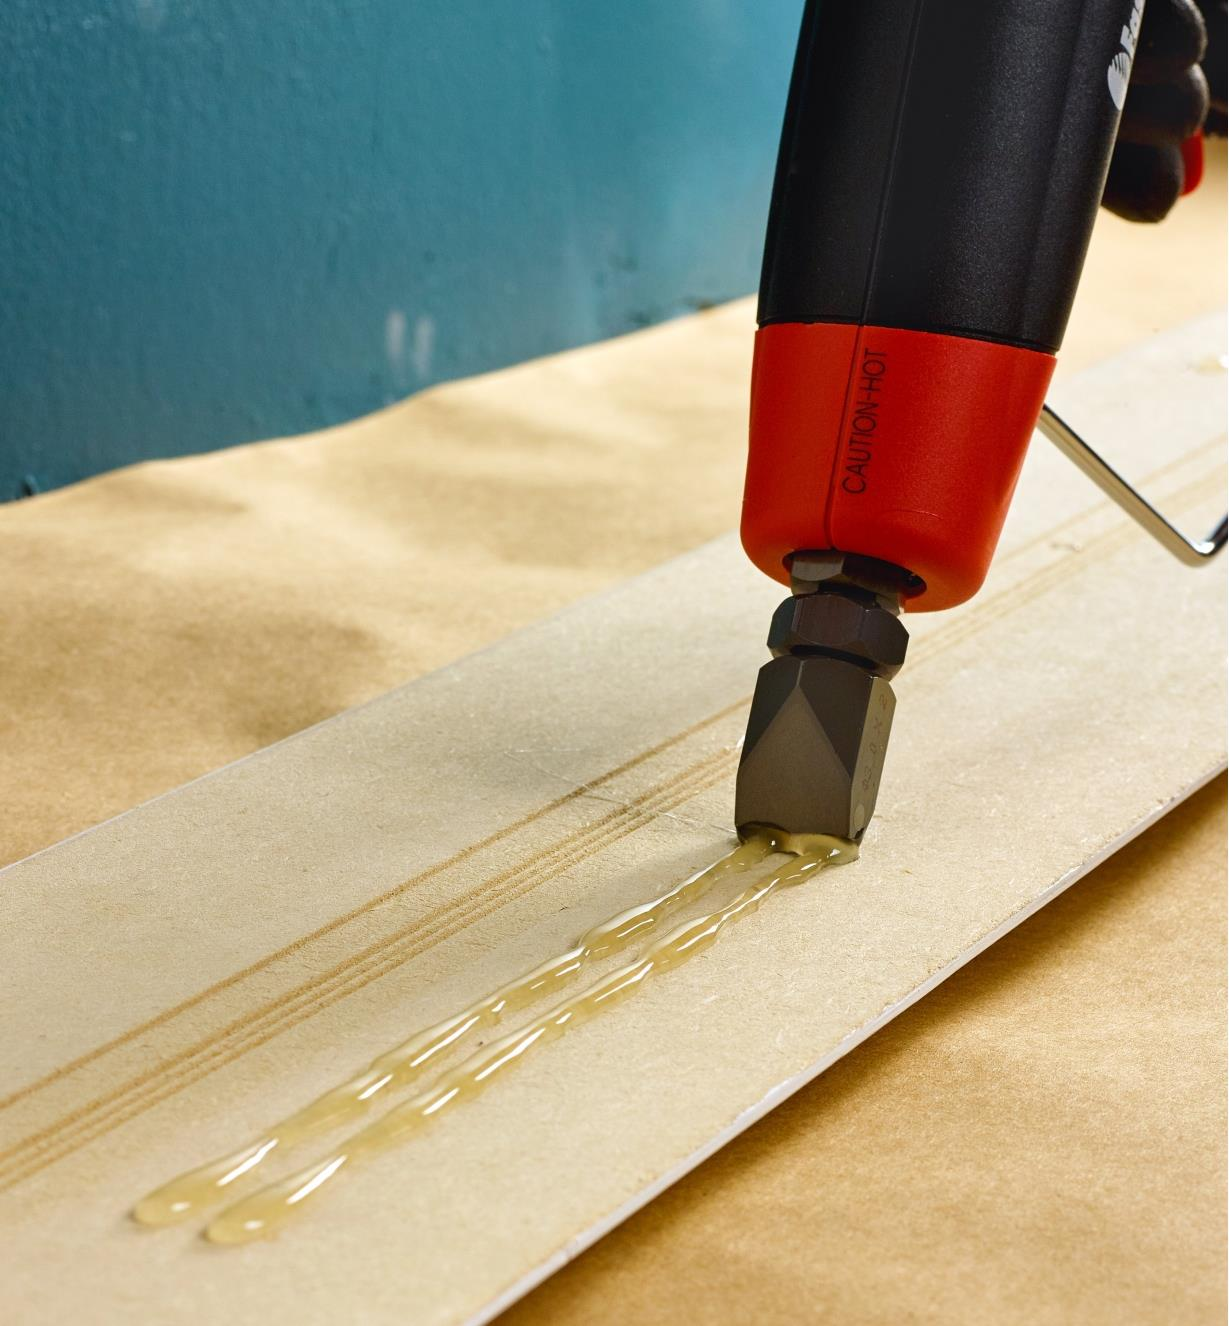 Installing trim using a double-flow nozzle on a FastenMaster Pro Hot-Melt Gun to glue it in place